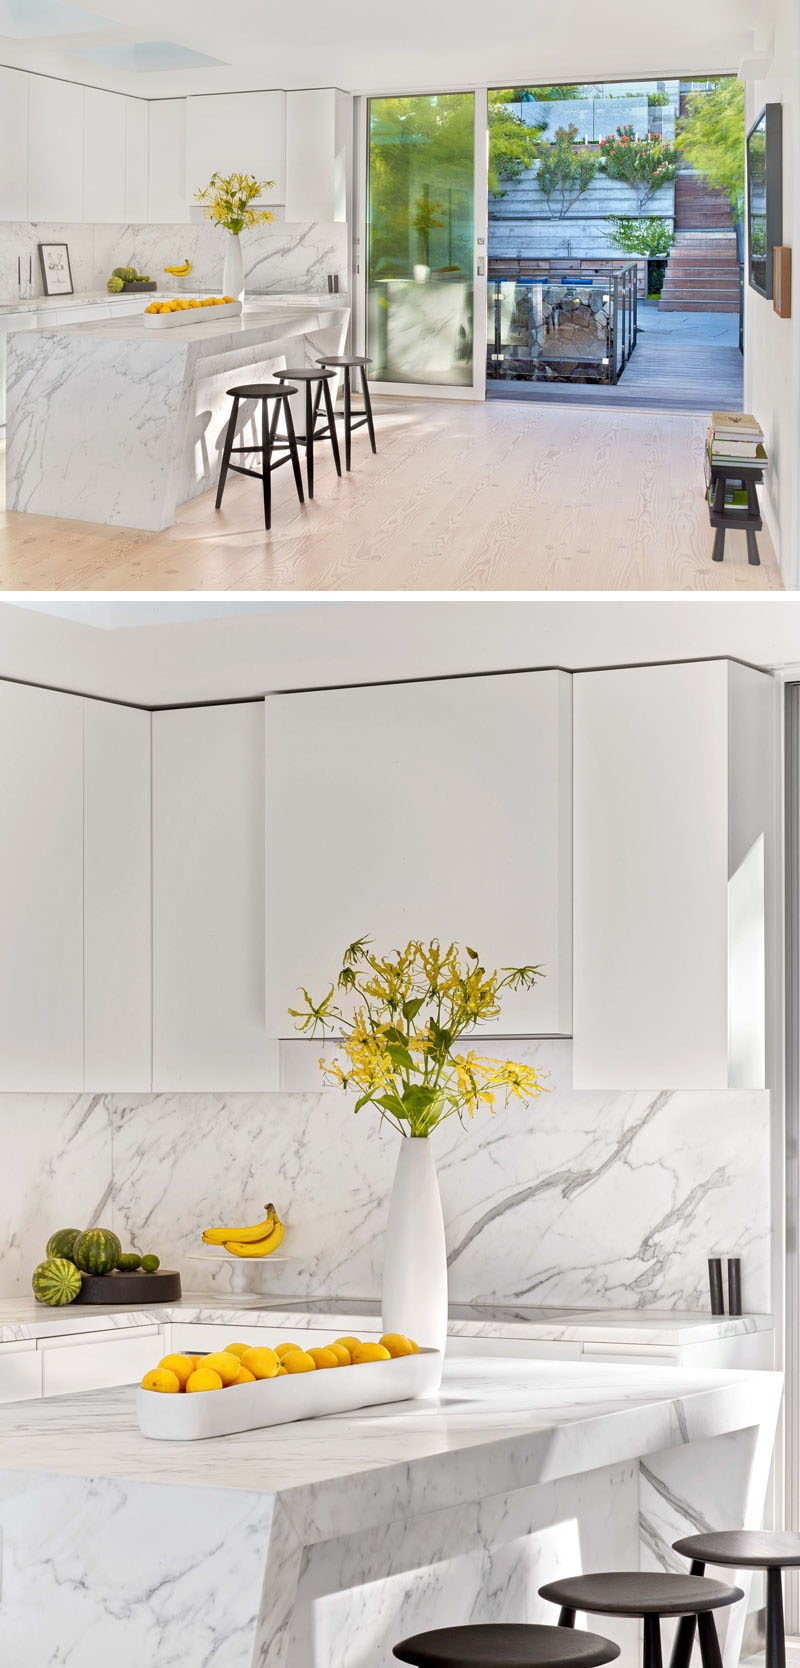 This kitchen combines white cabinets and marble countertops for a modern look. #ModernKitchen #WhiteKitchen #KitchenDesign #WhiteMarble